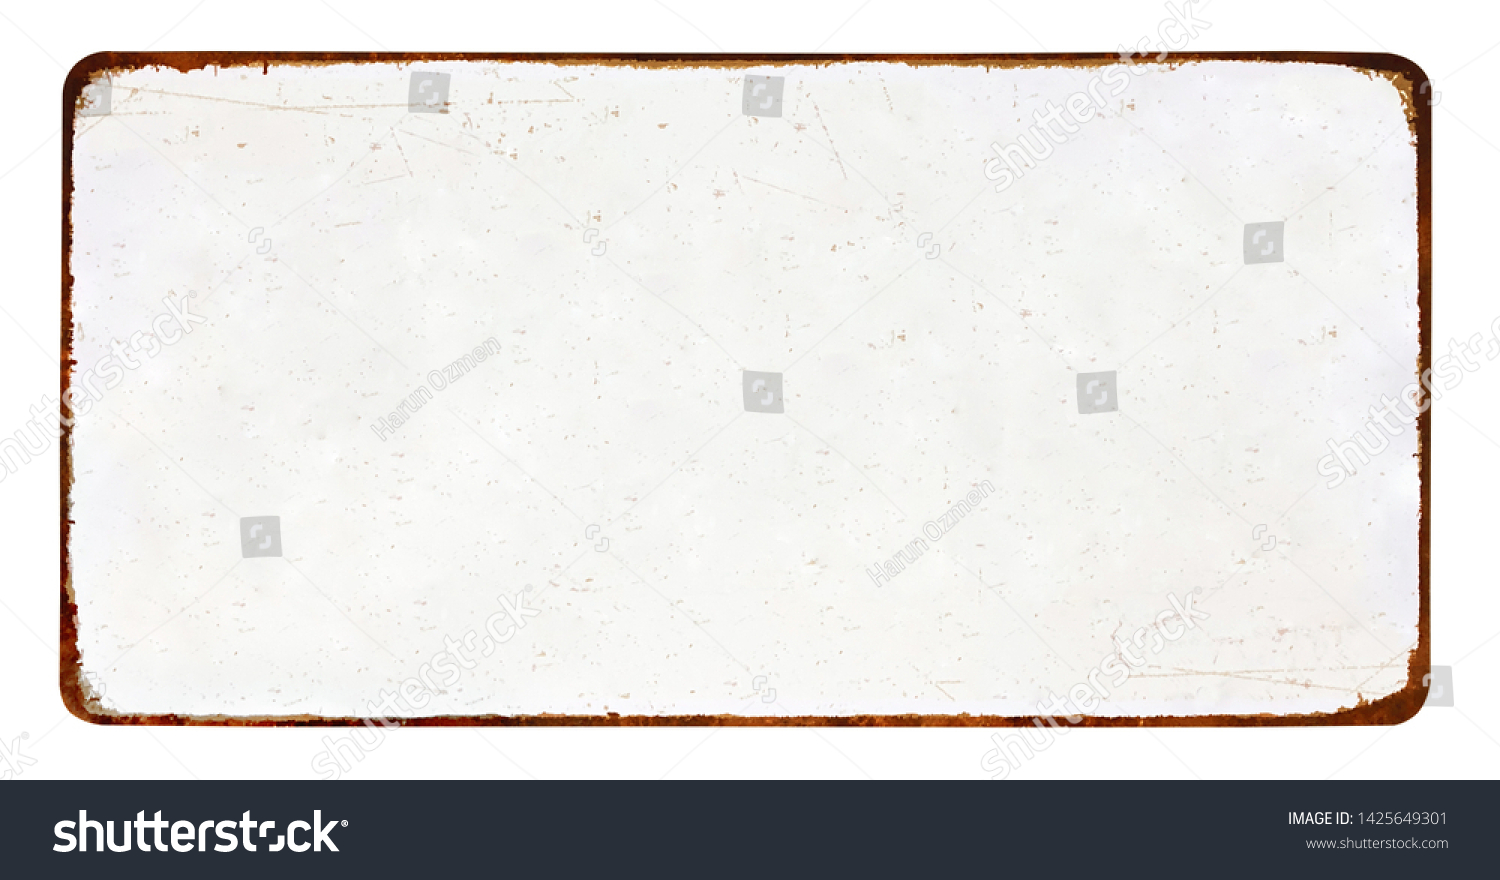 Antique vintage rusty enameled grunge metal sign or panel mockup or muck up template isolated on white background #1425649301